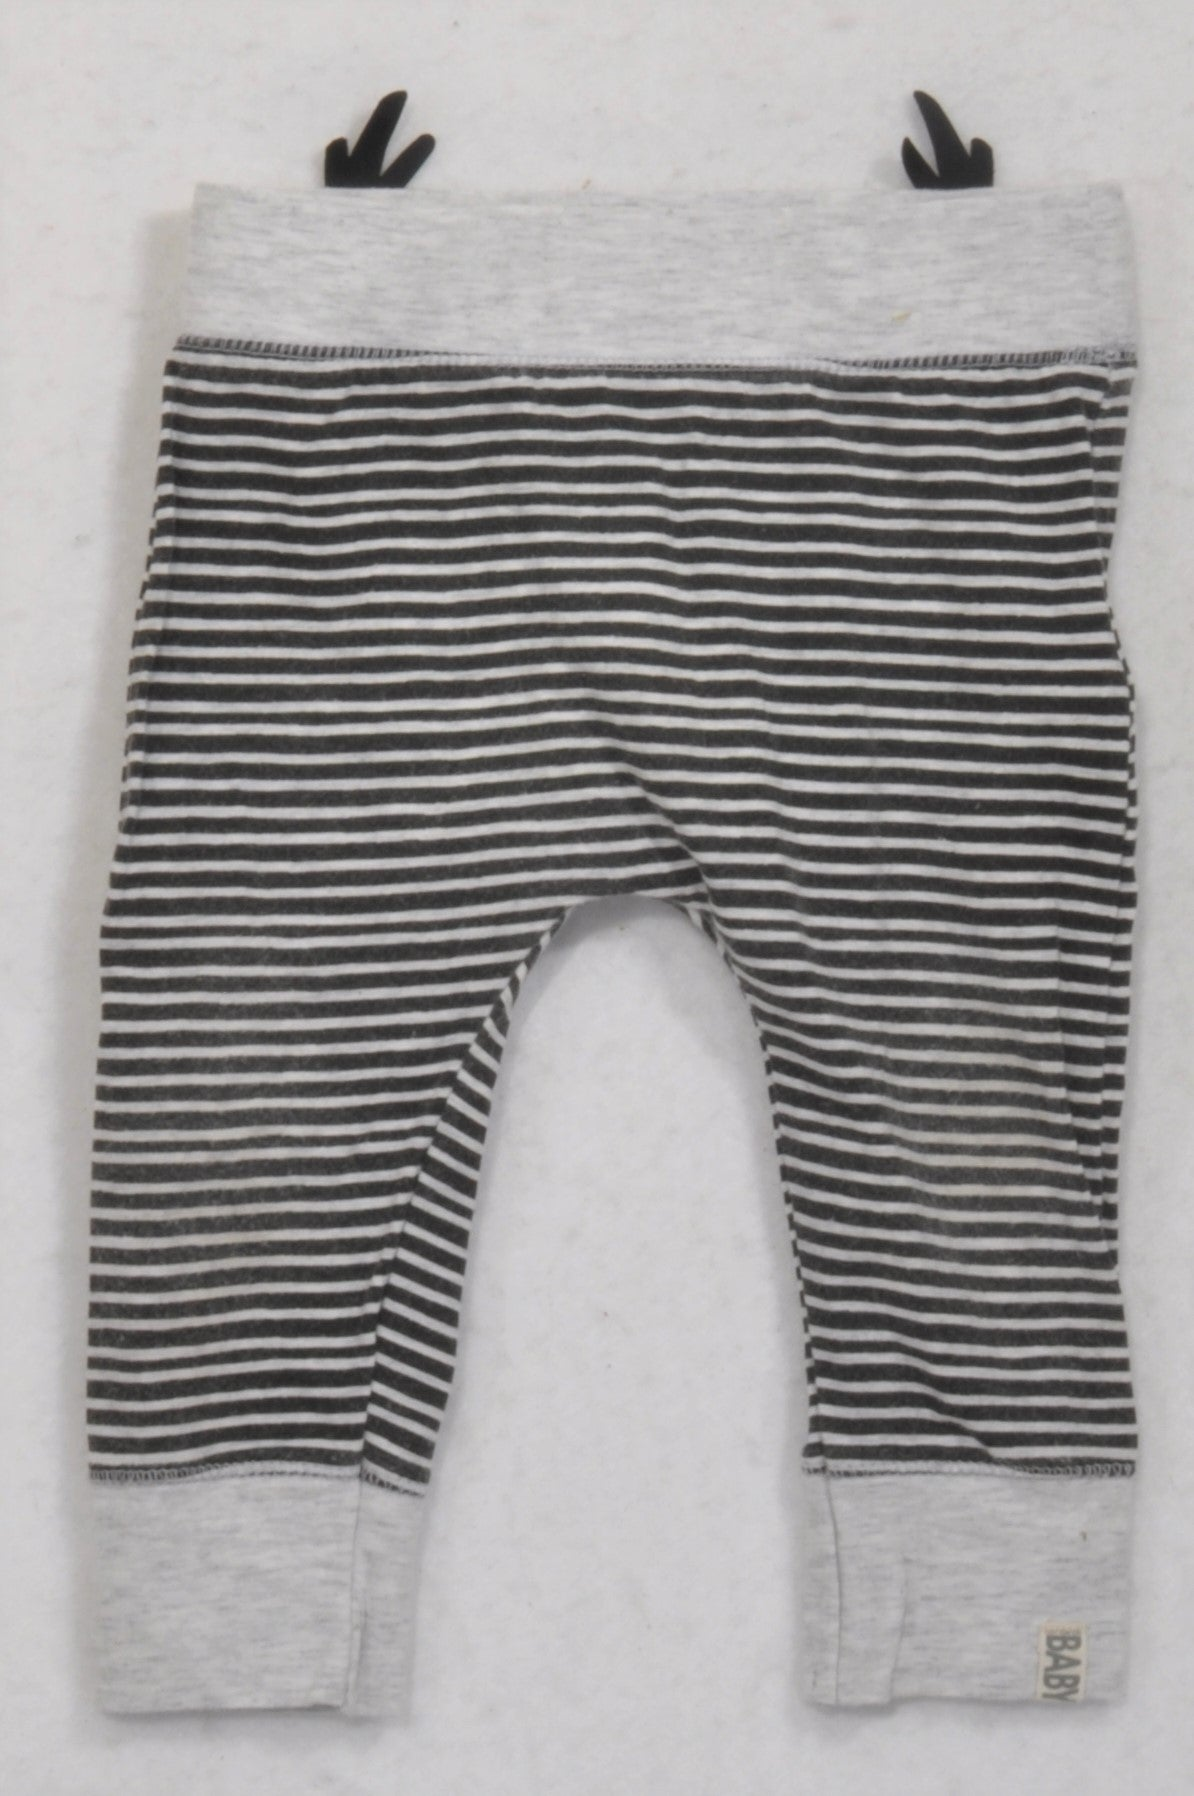 Cotton On Black White Striped Reindeer Leggings Unisex 6 12 Months Once More